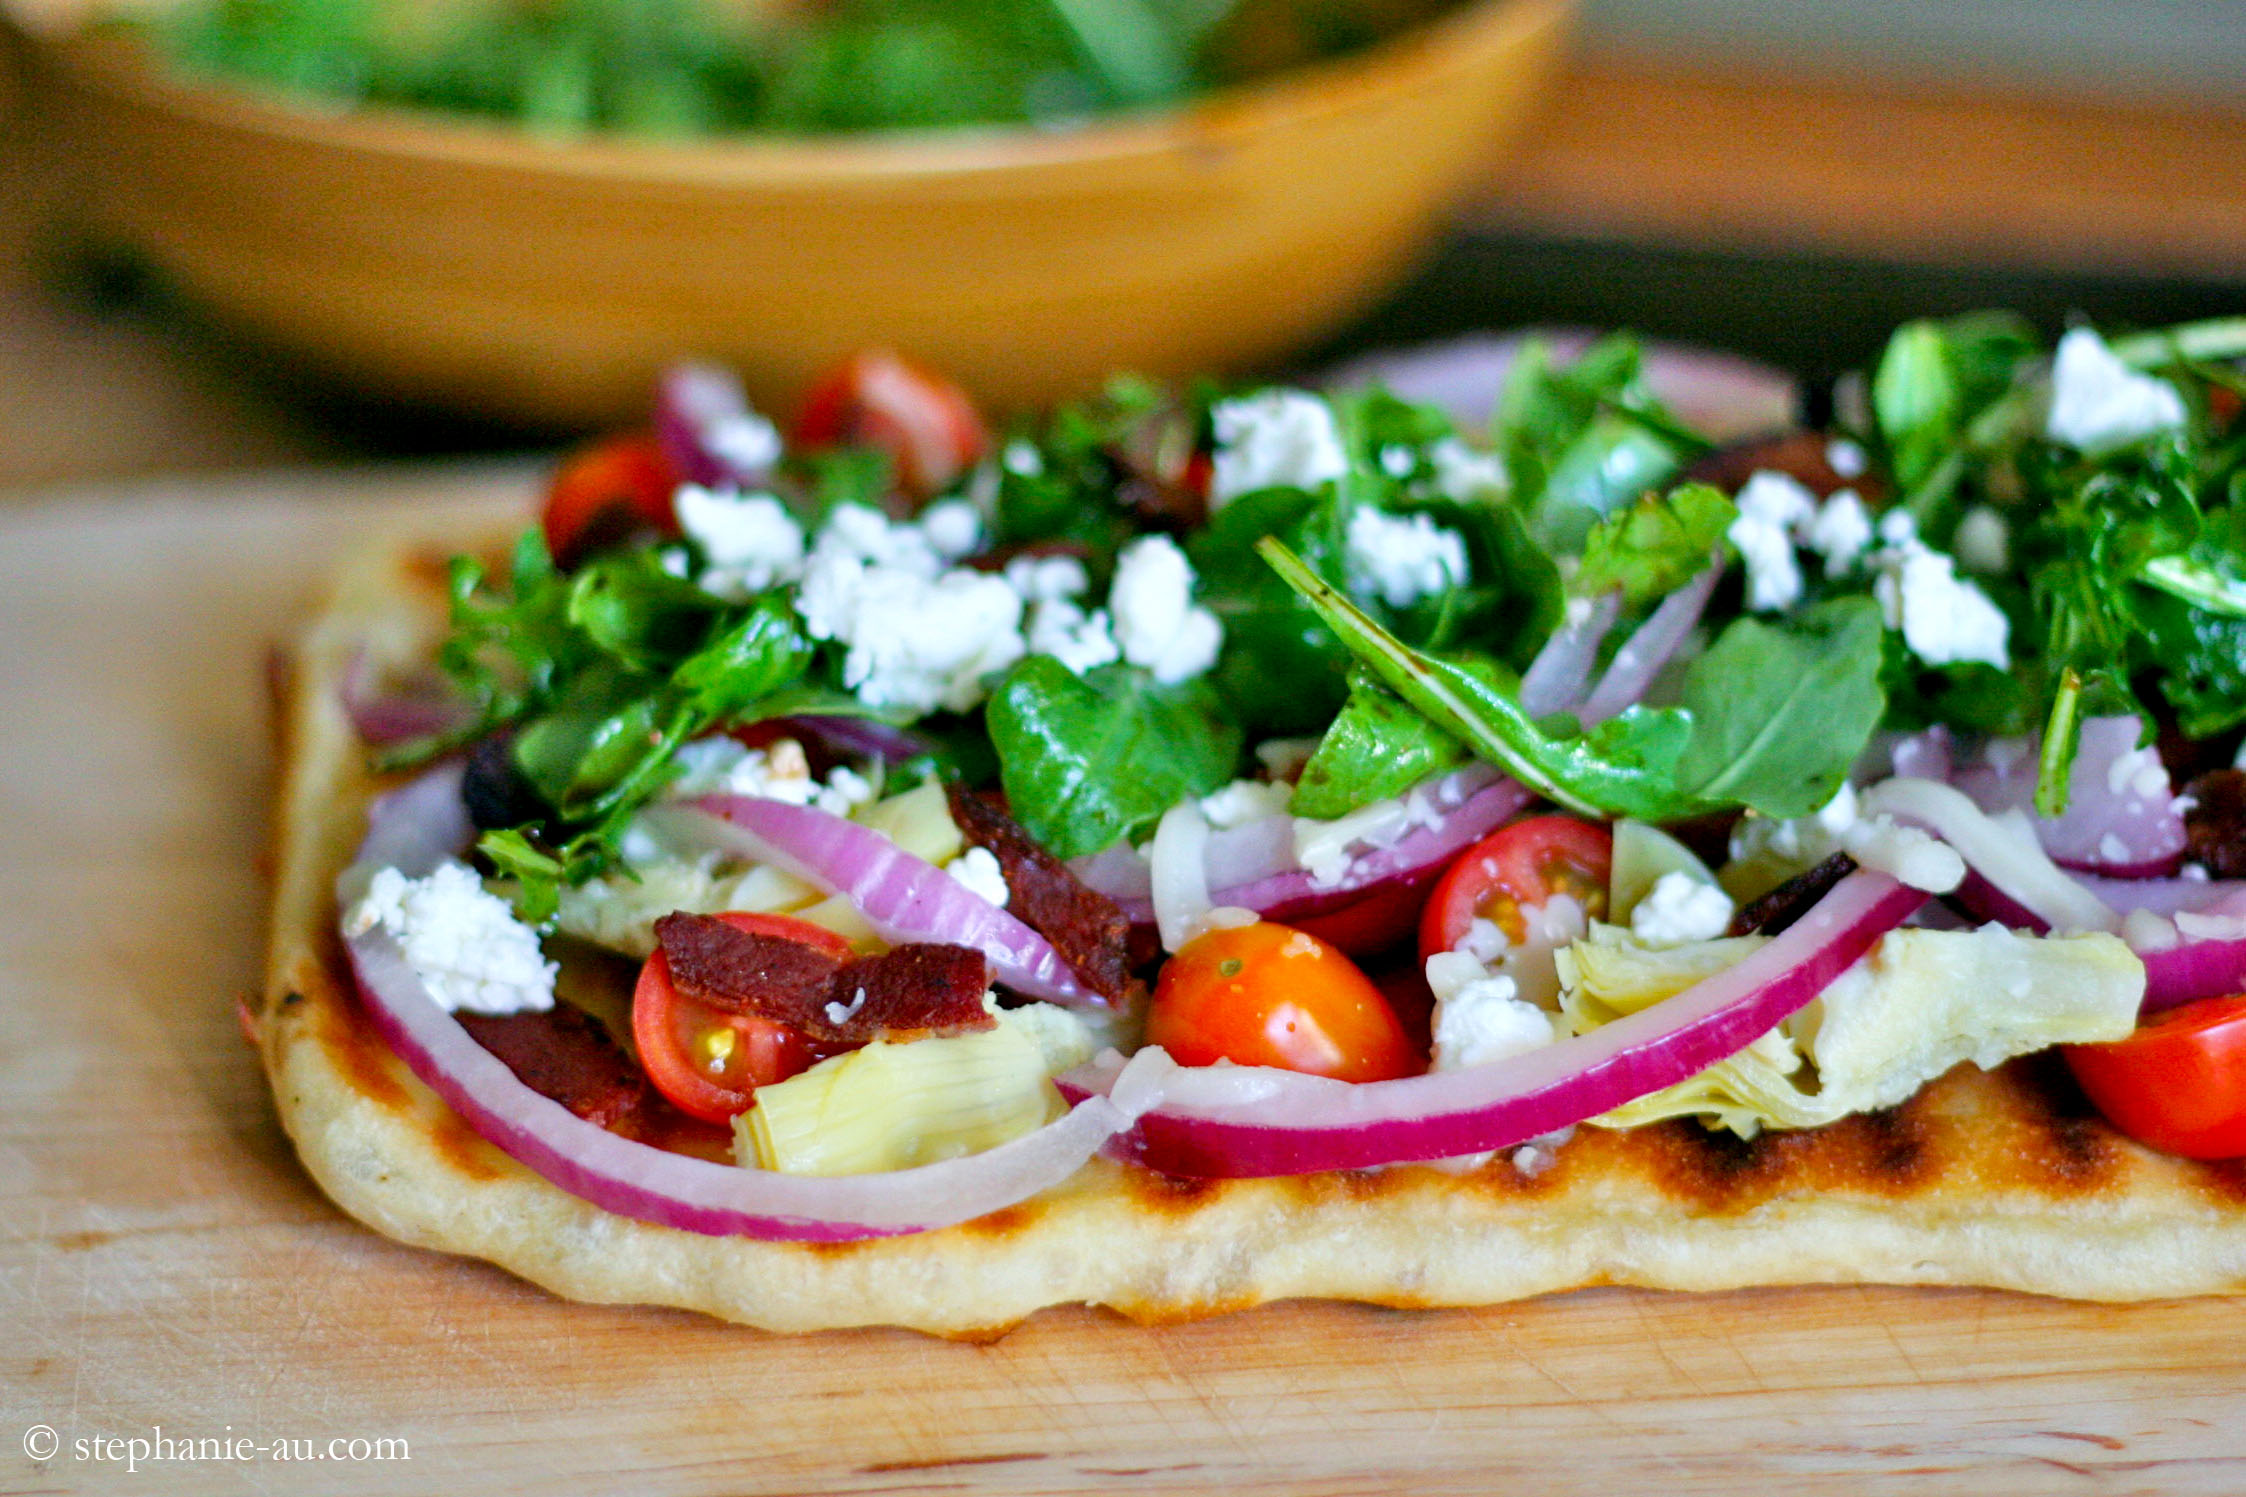 grilled-flatbread-pizza-endpiece.jpg